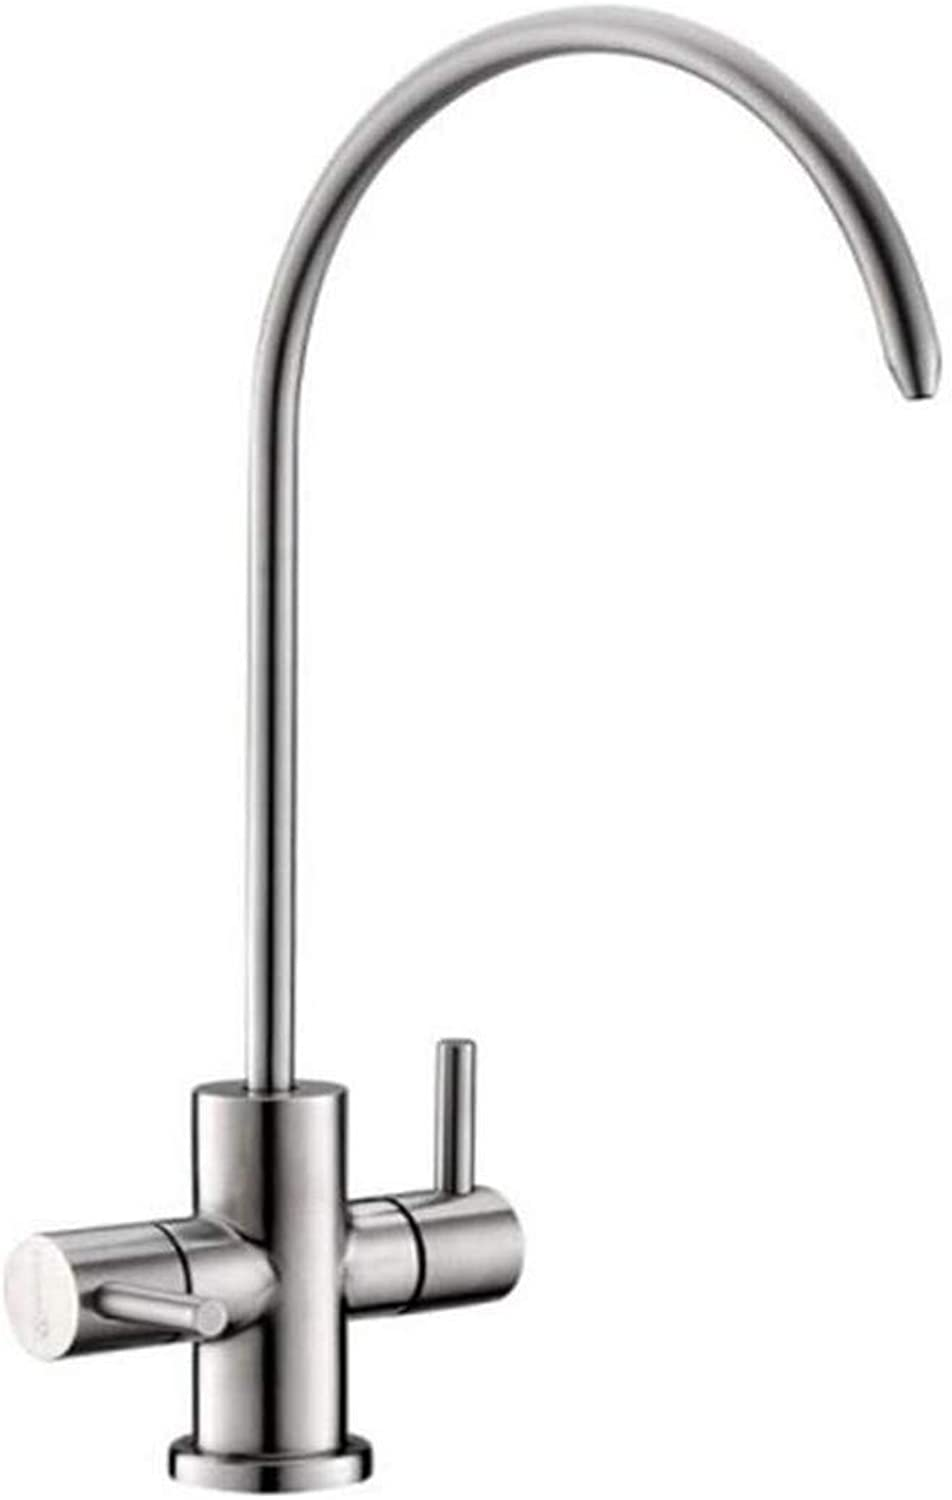 Chrome-Plated Stainless Steel Brass High Quality Sink Dual Outlet Water Purifier Faucet Double Hole 304 Stainless Steel Lead-Free Direct Drinking Faucet